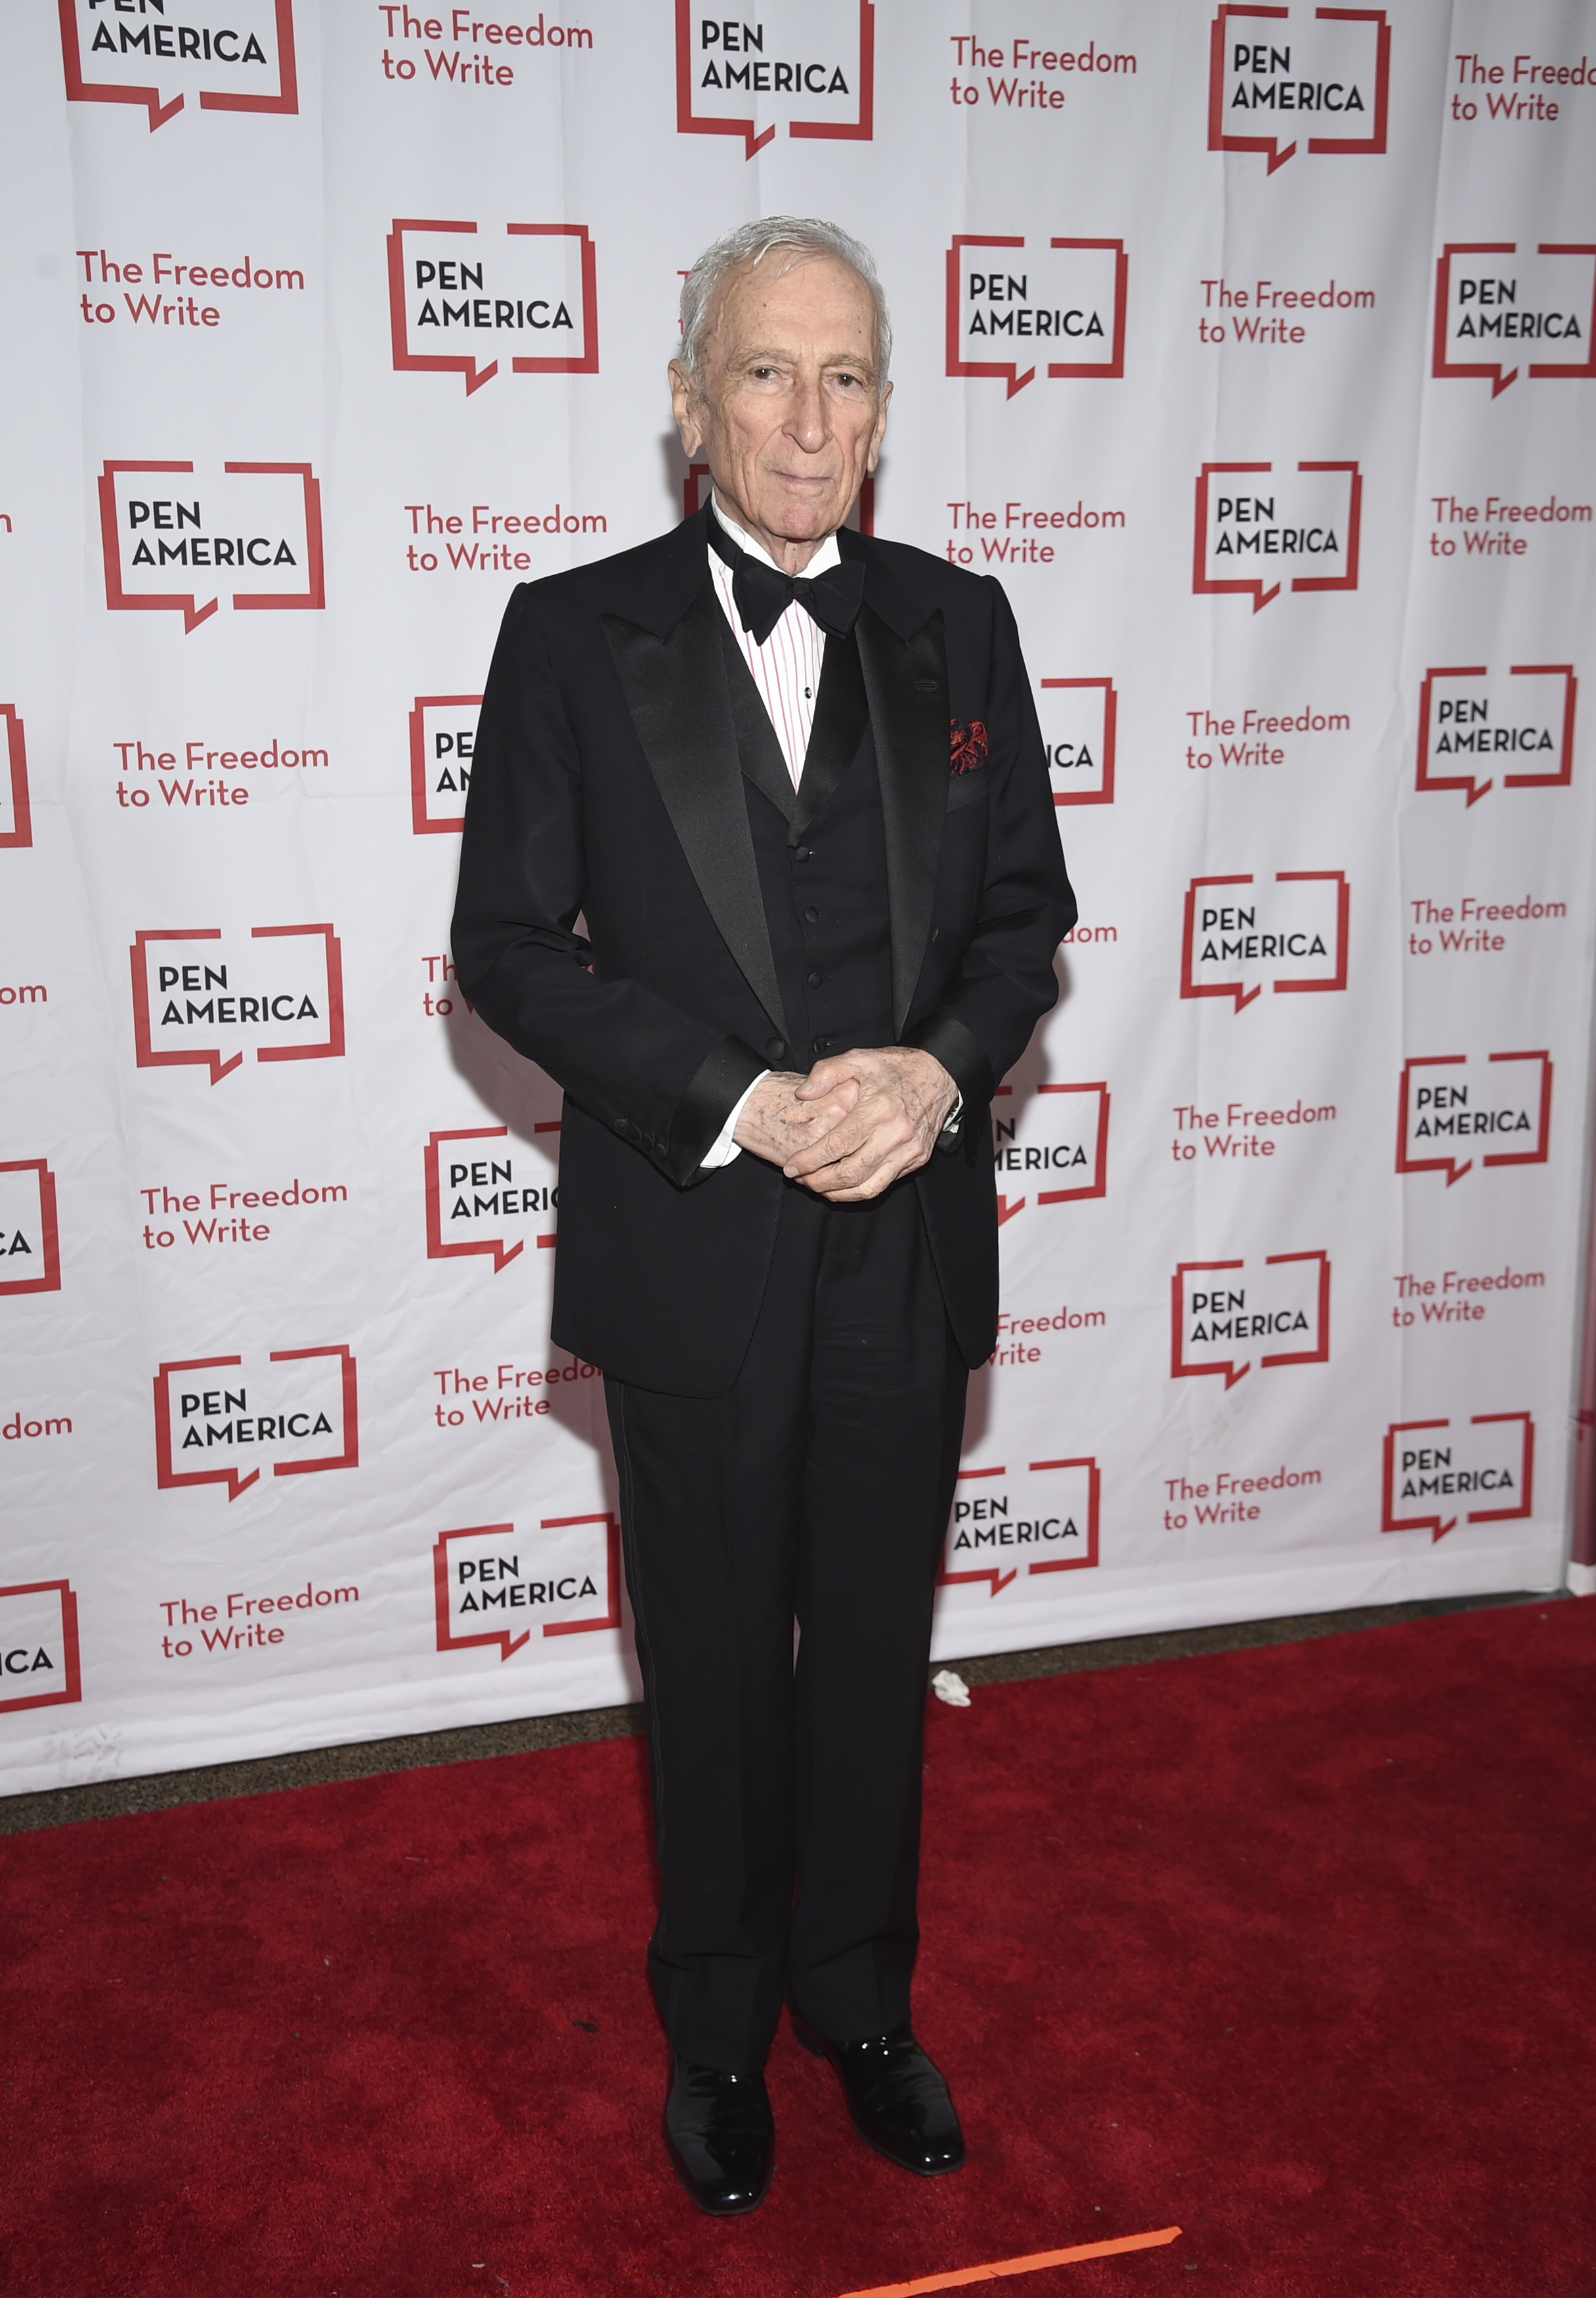 Writer Gay Talese attends the 2018 PEN Literary Gala at the American Museum of Natural History on Tuesday, May 22, 2018, in New York. (Photo by Evan Agostini/Invision/AP)